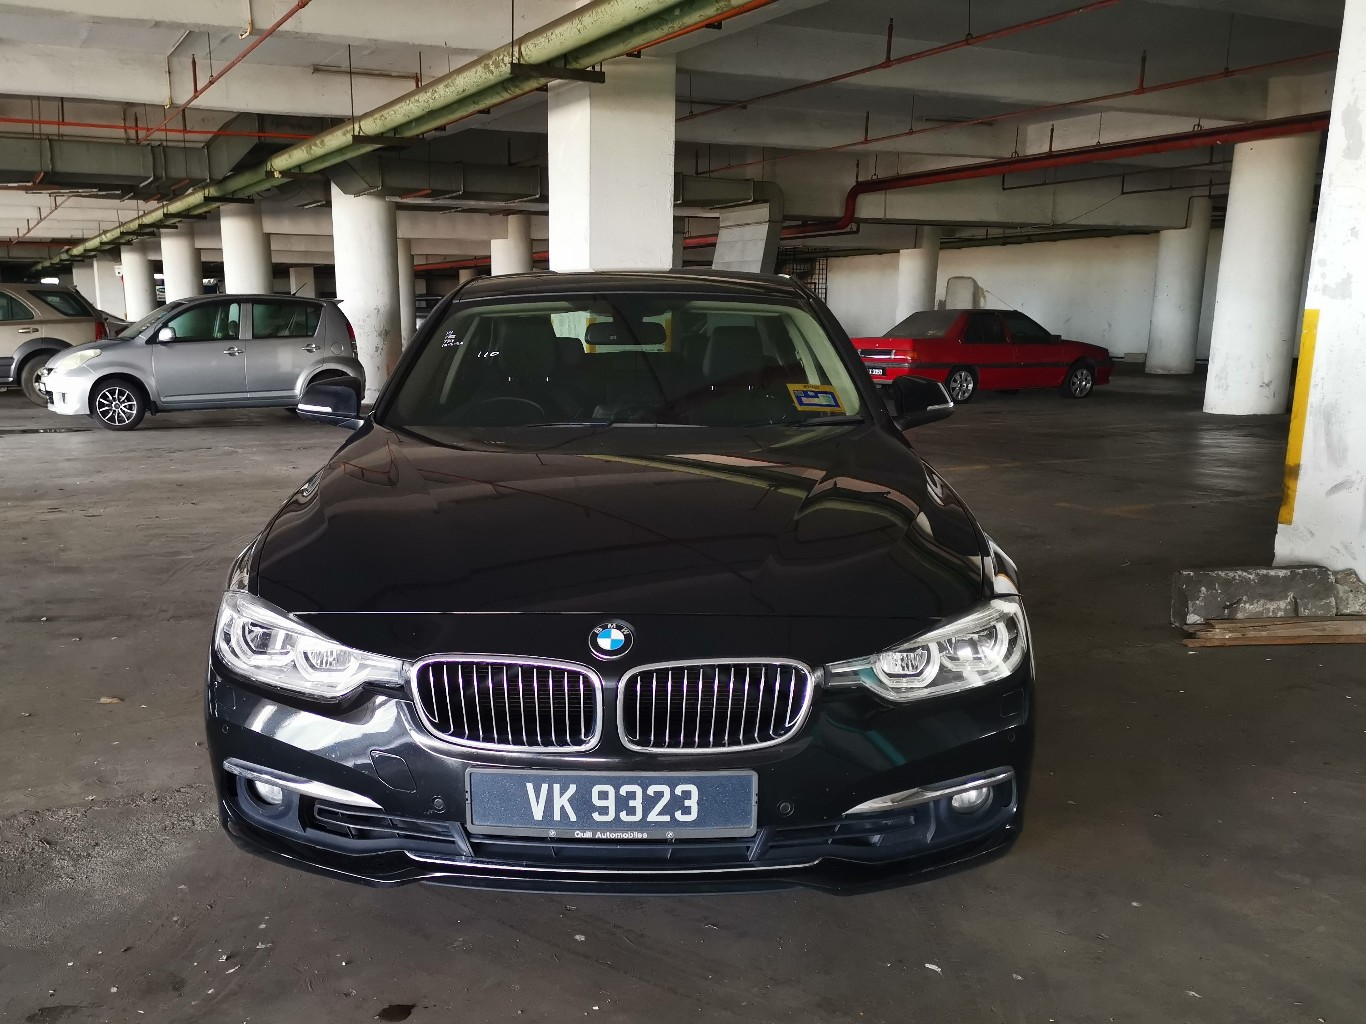 BMW 318I | Lelongtips.com.my